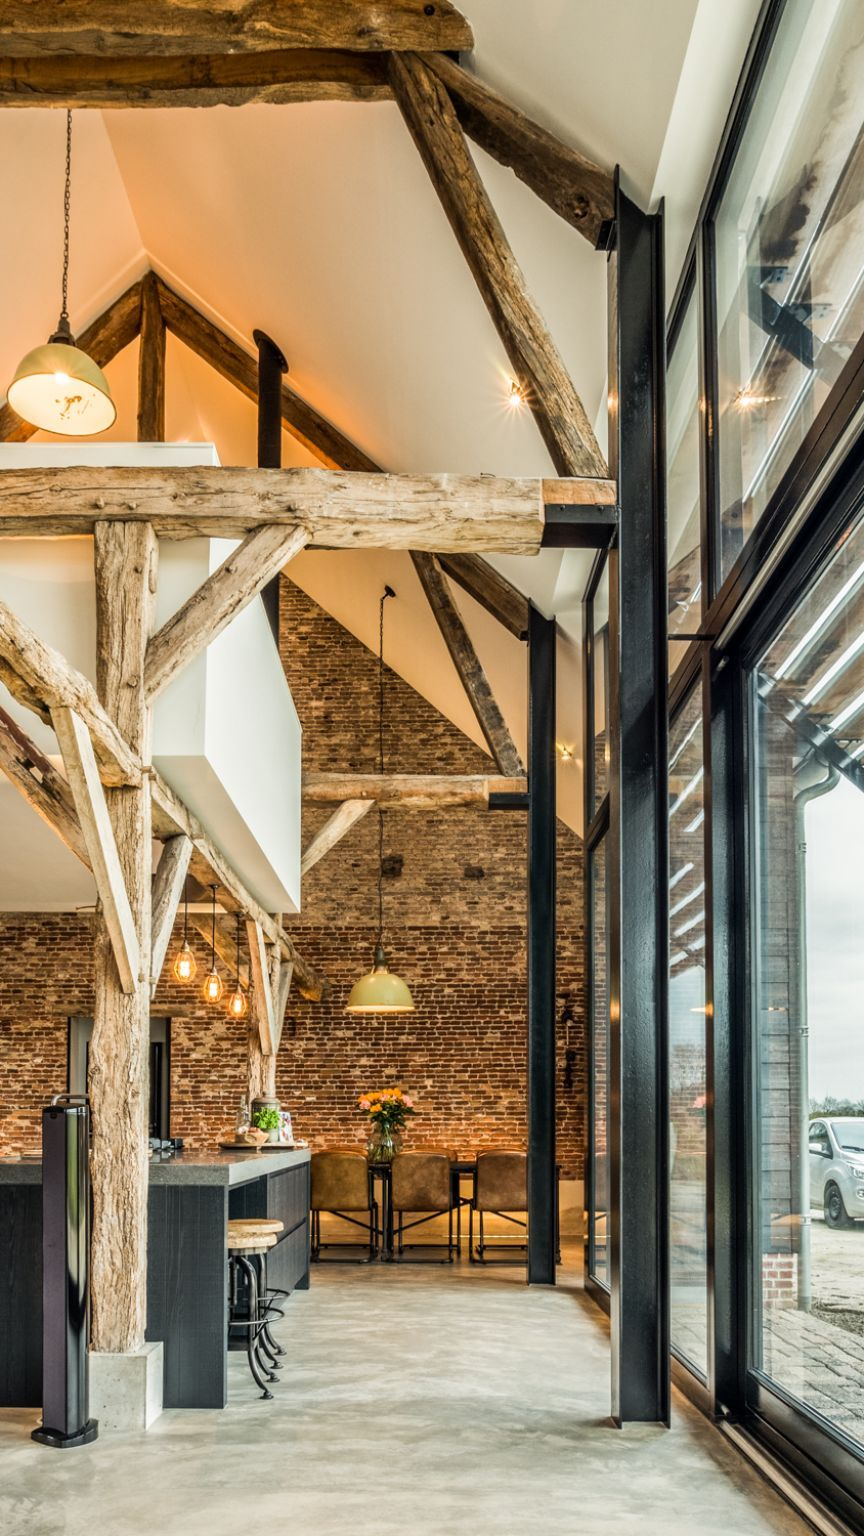 The wooden beams and brick wall give the house a rustic-industrial vibe and make it feel extra warm and cozy